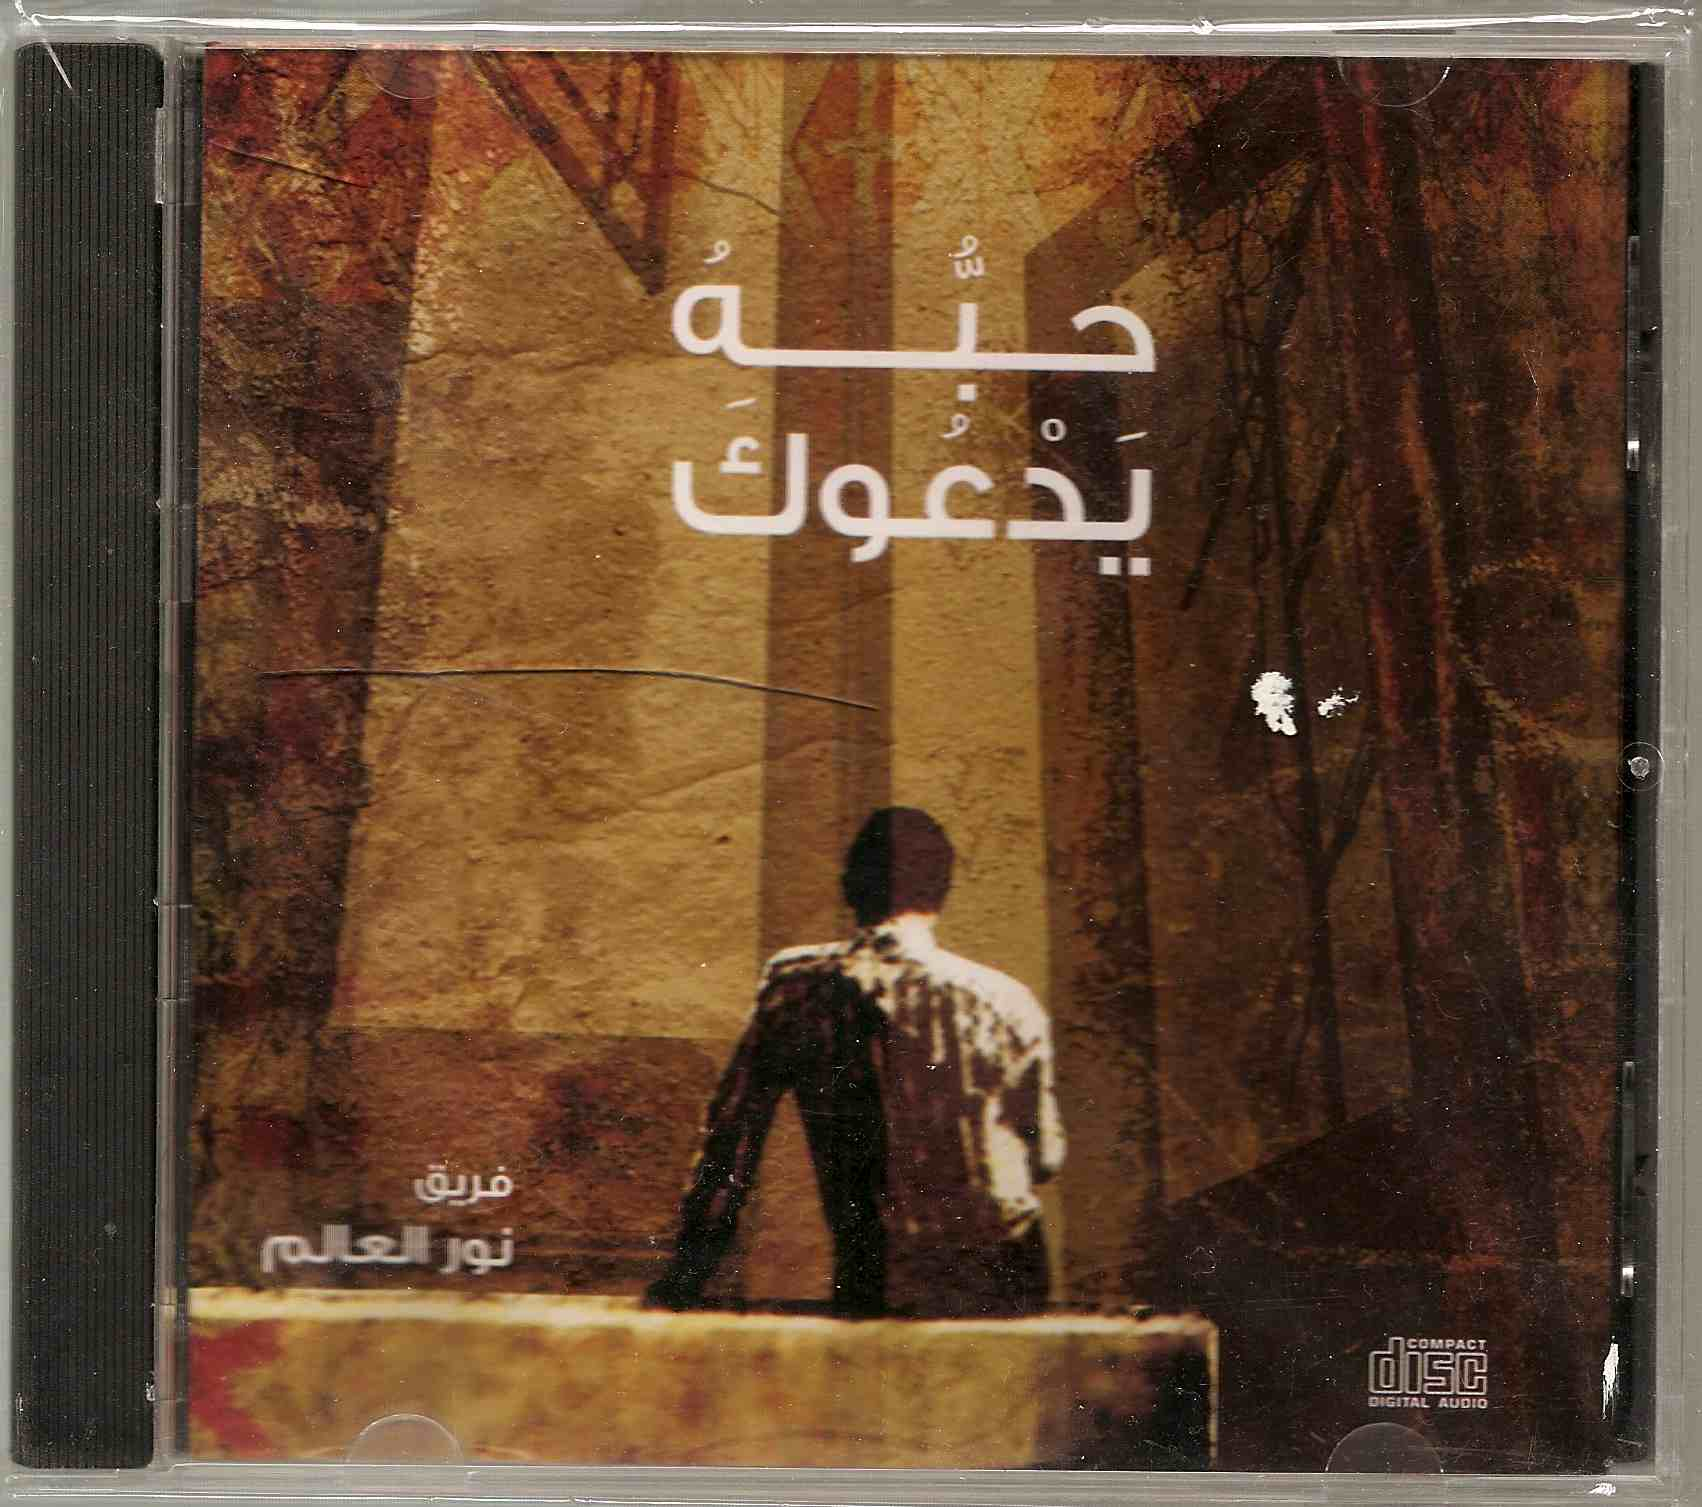 His love draws you Arabic CD by Nor Alalam worship team